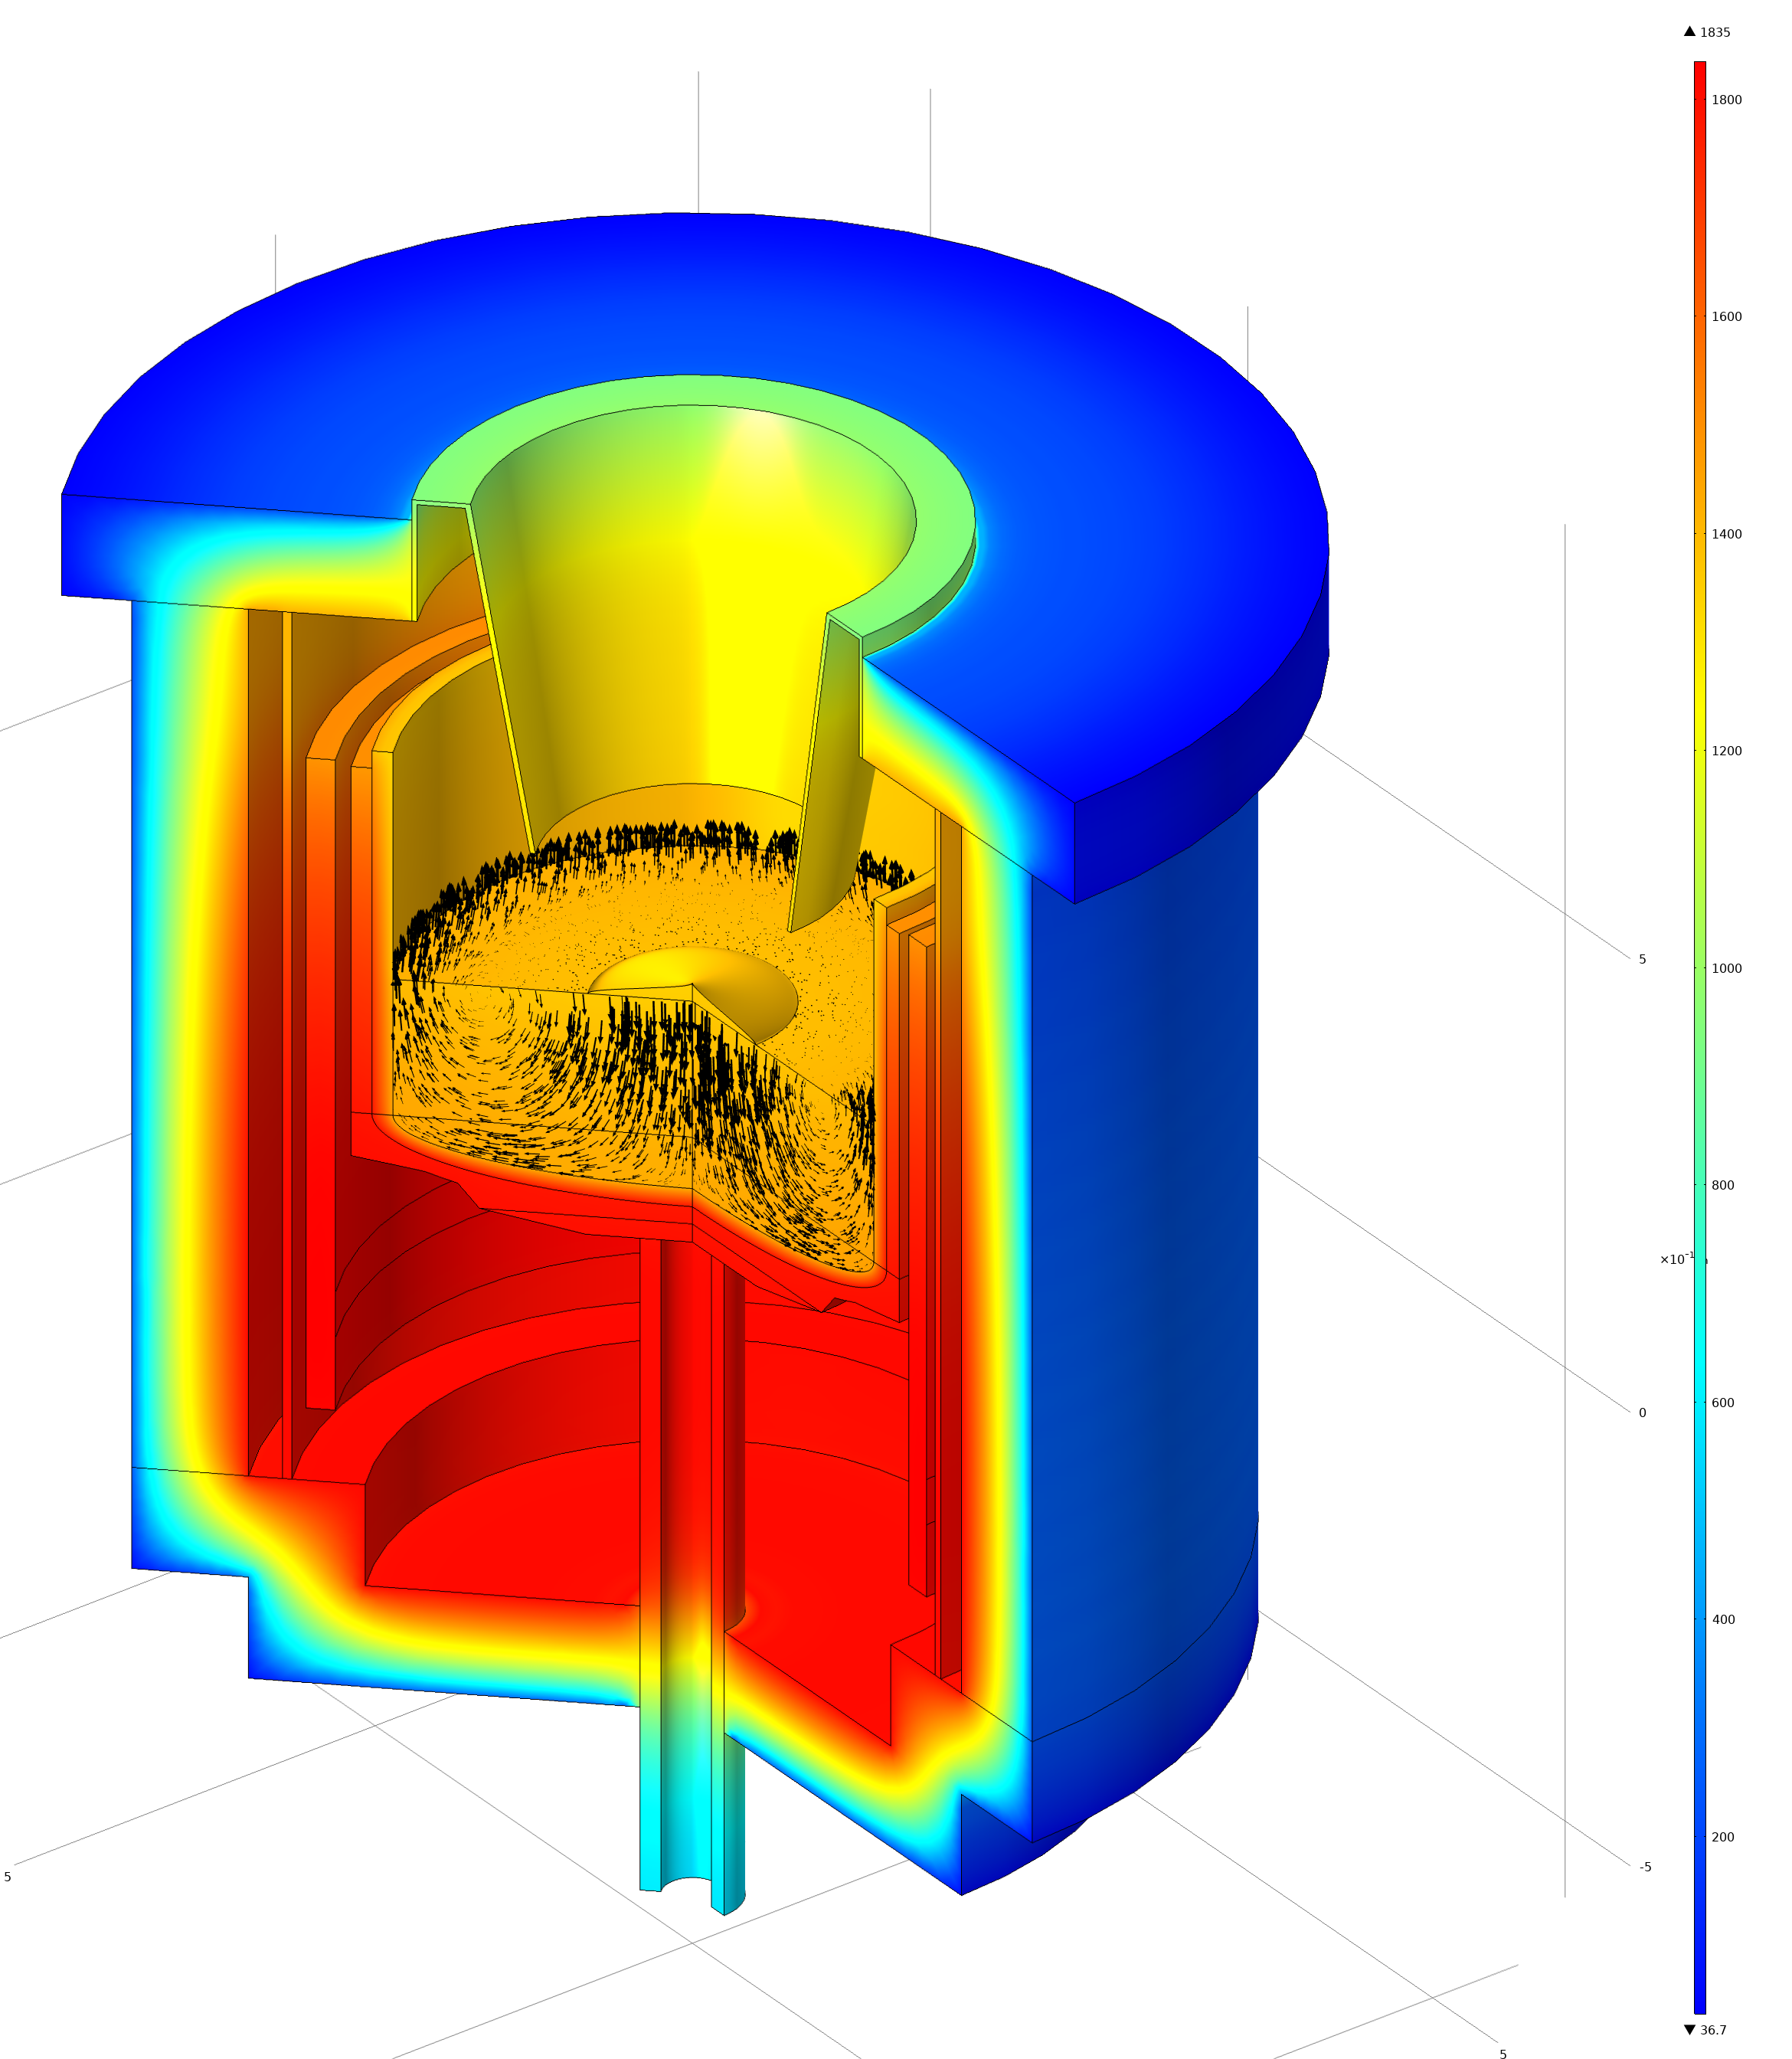 A COMSOL Multiphysics simulation showing crystal growth.